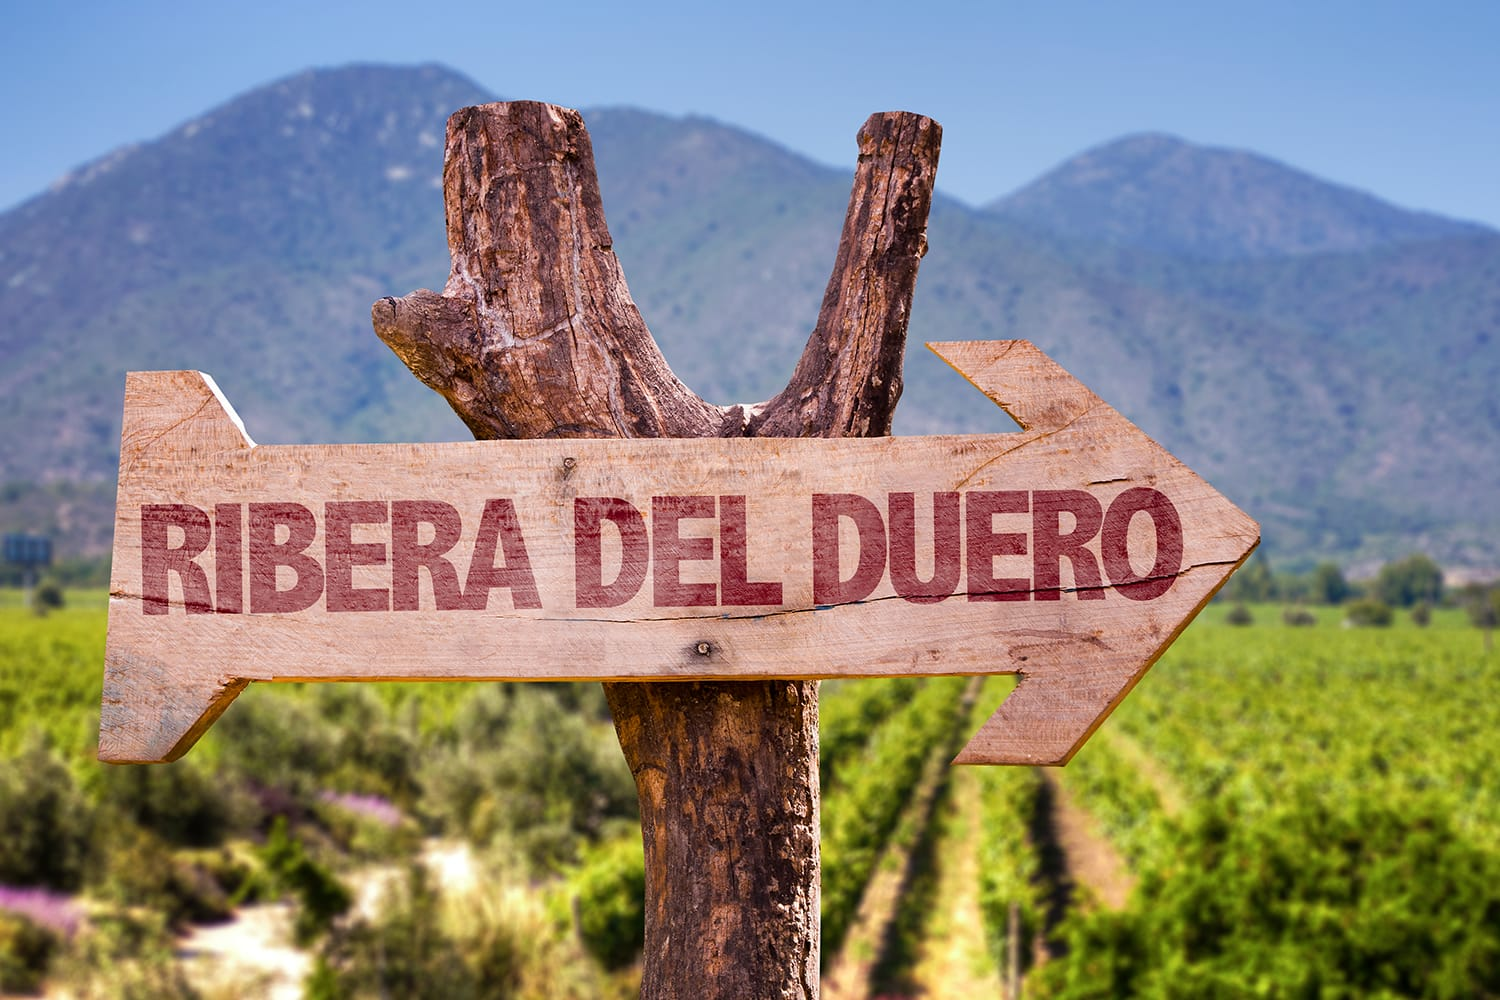 Ribera Del Duero wooden sign with vineyard background, Spain